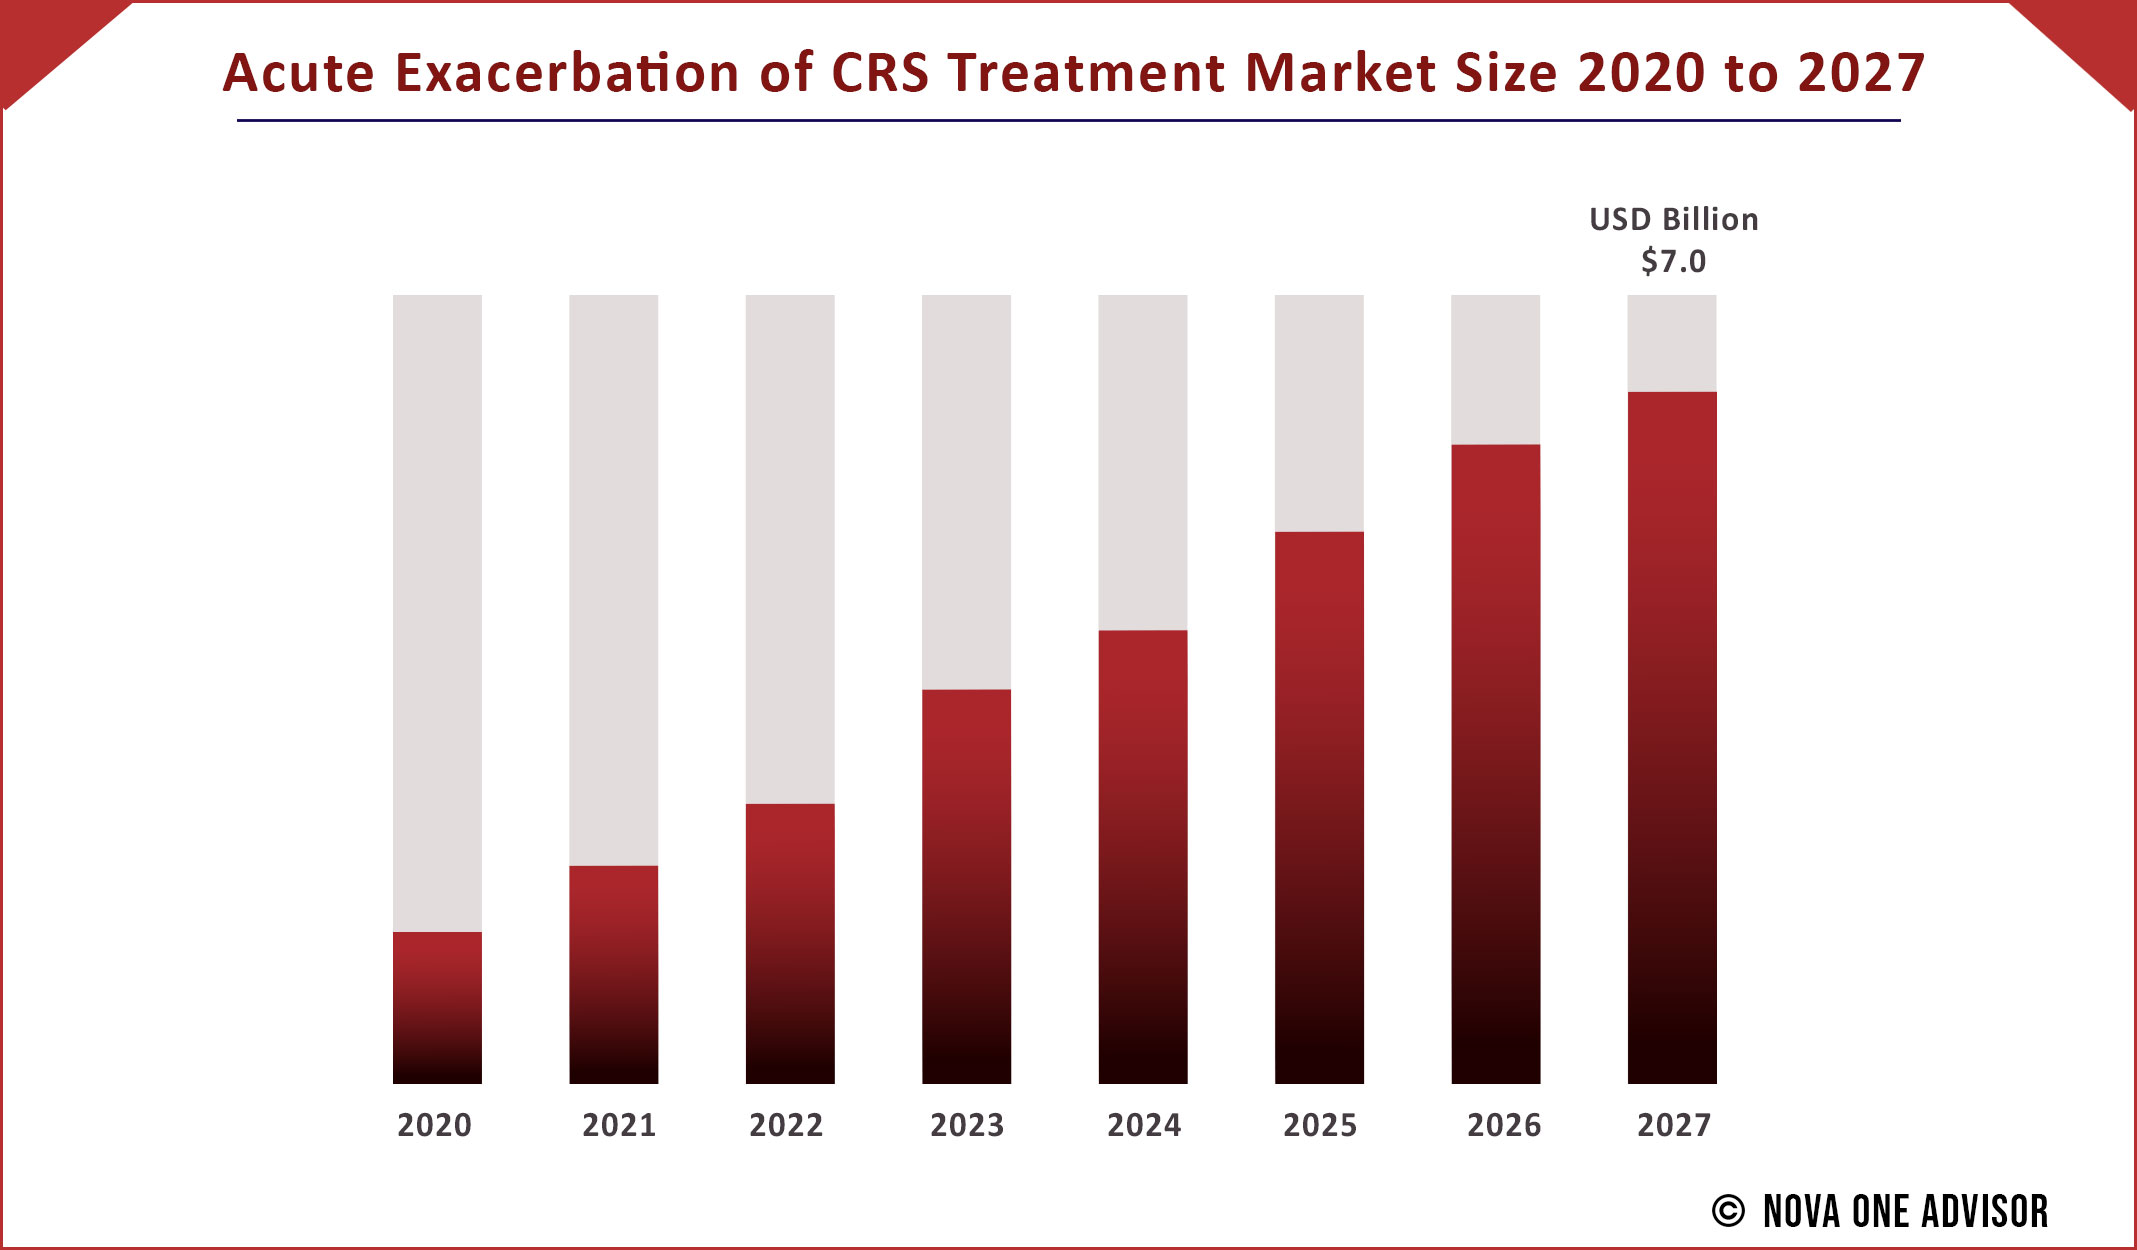 Acute Exacerbation of CRS Treatment Market Size 2020 to 2027